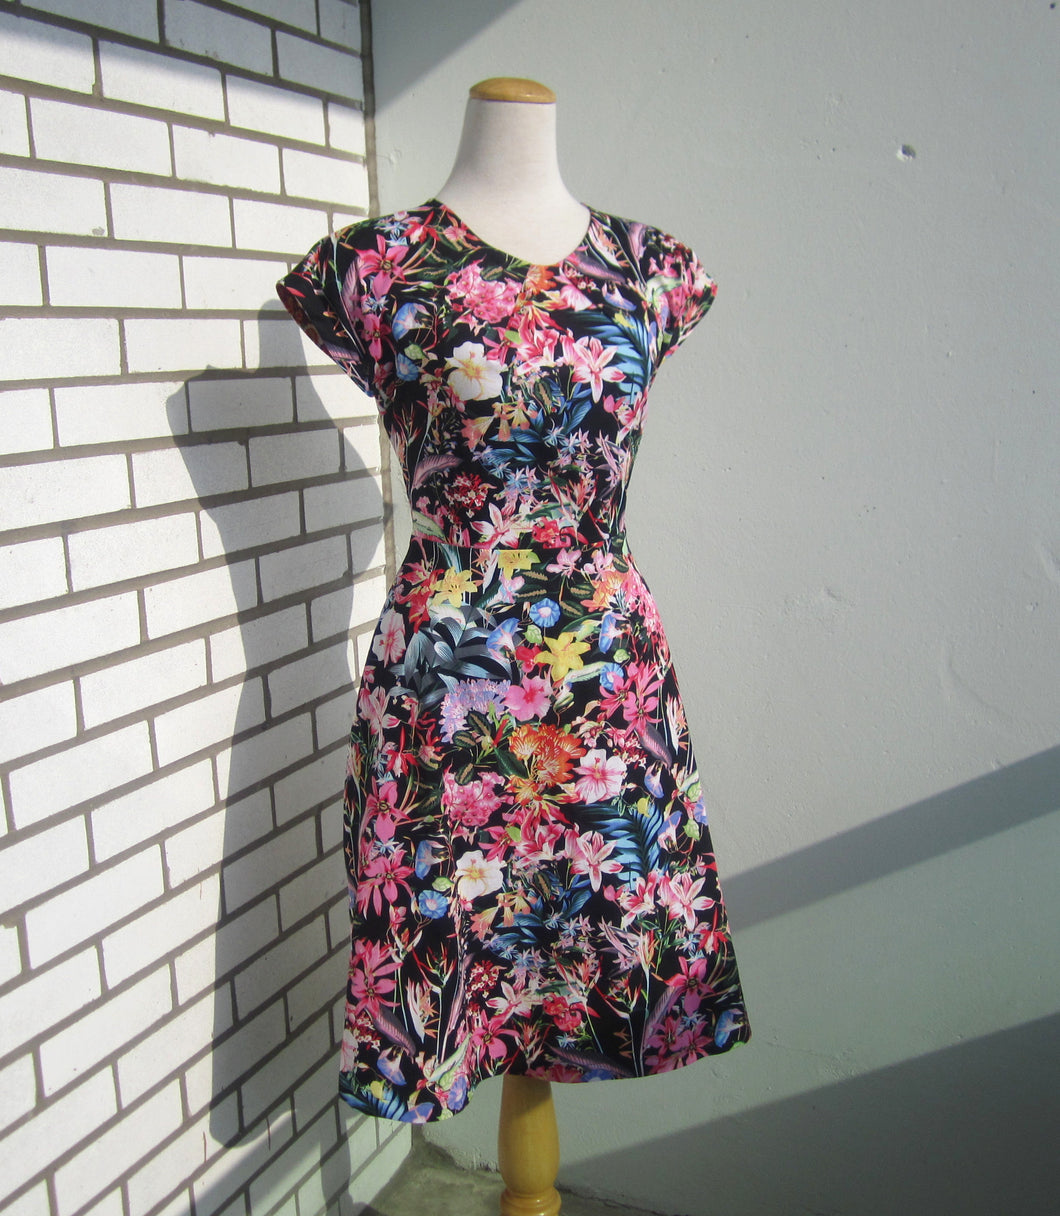 PTA Provocateur Short Sleeve Fit and Flare Dress in Black and Multi Floral Cotton Sateen